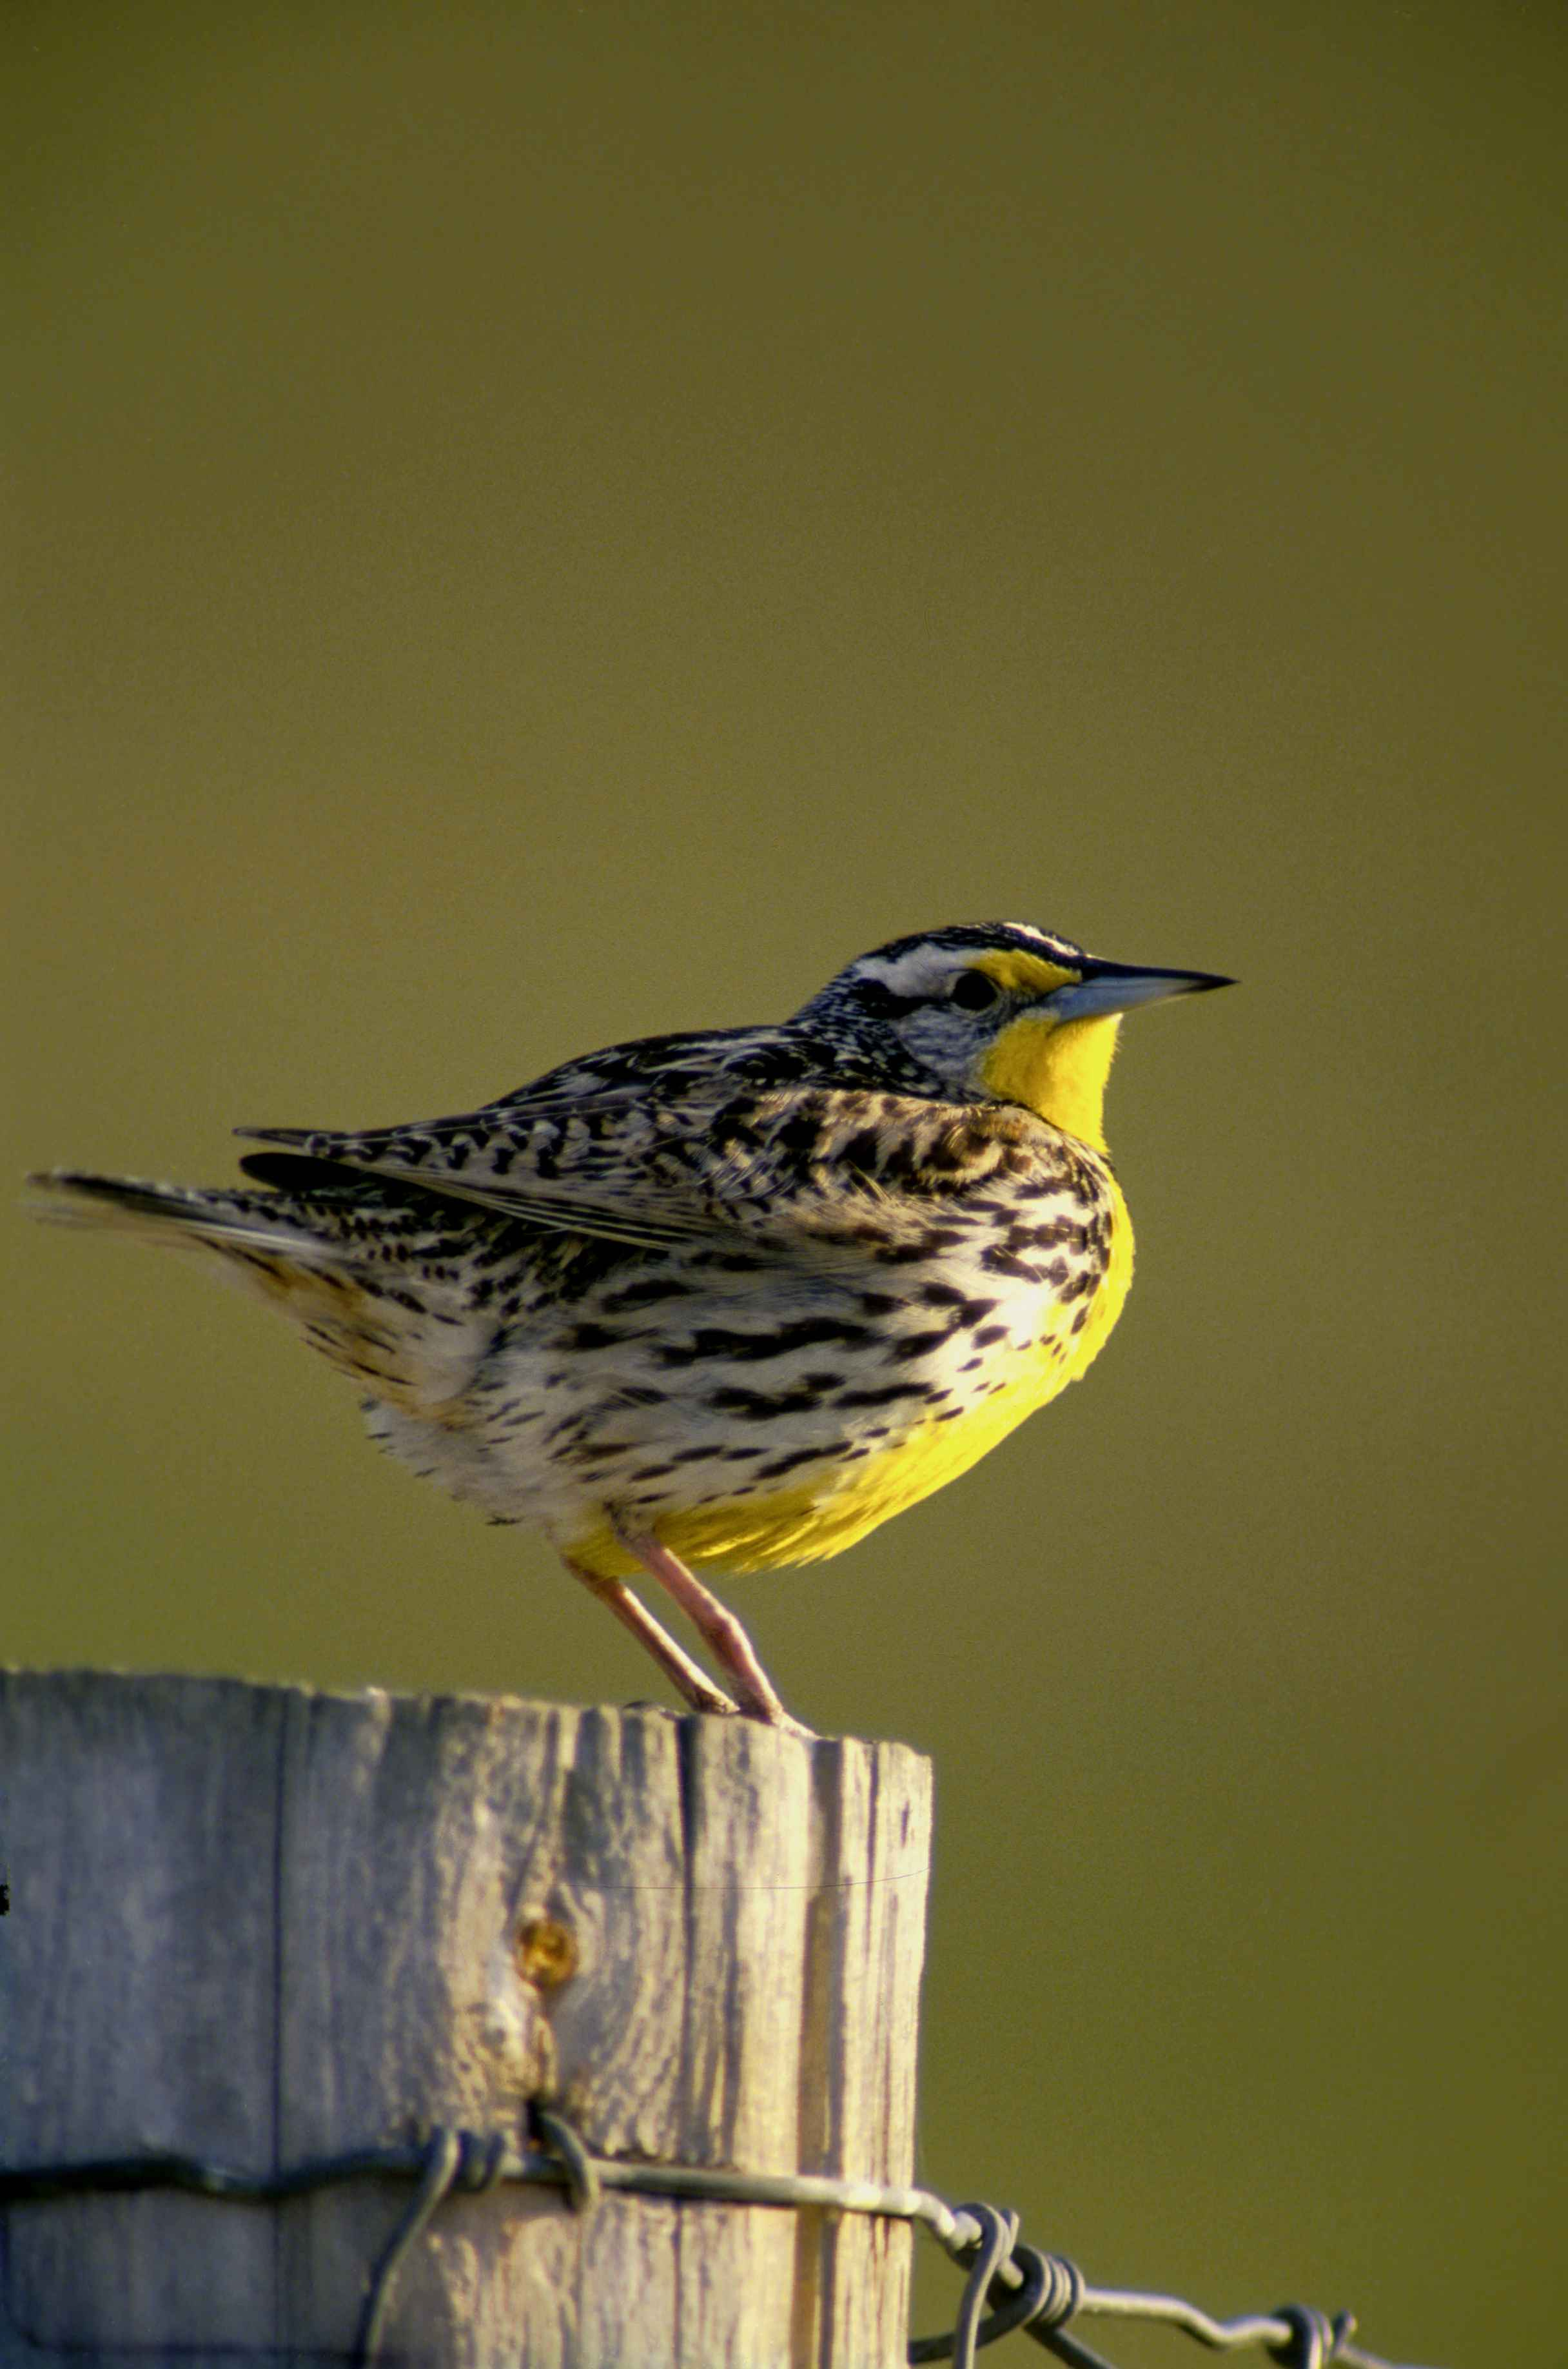 western meadowlark bird free images public domain images